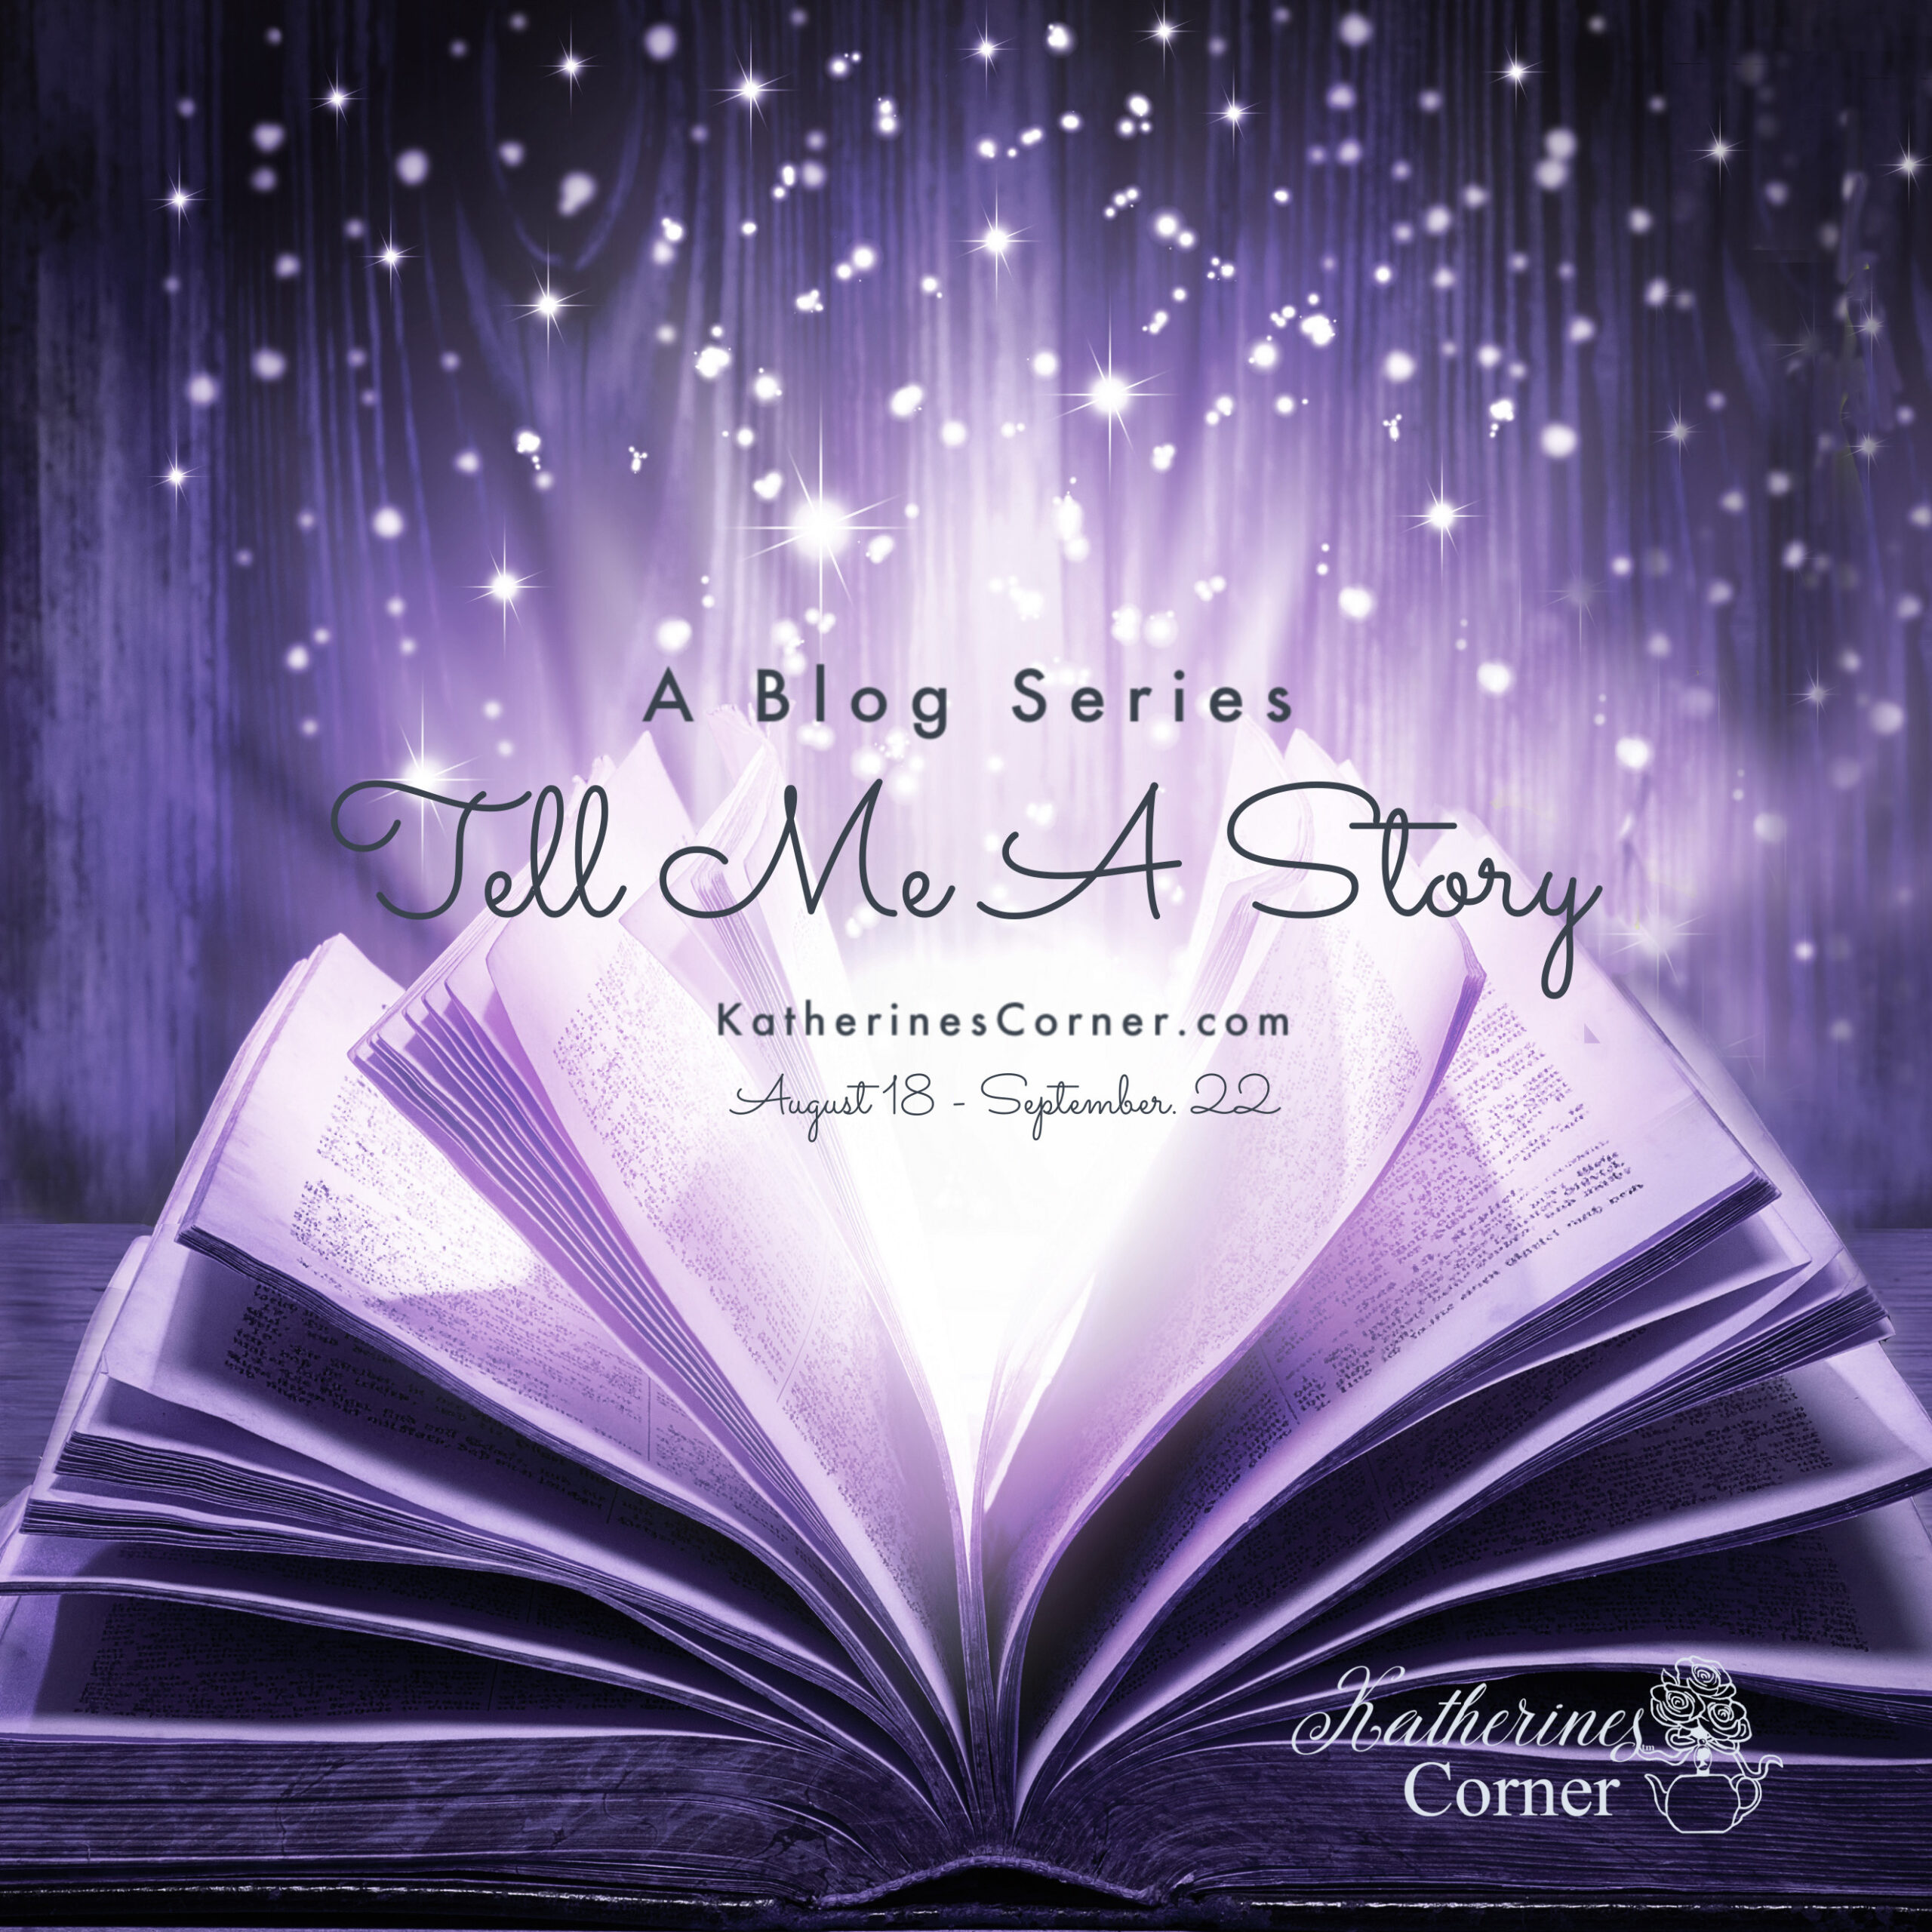 Tell Me a Story blog series starts August 18th